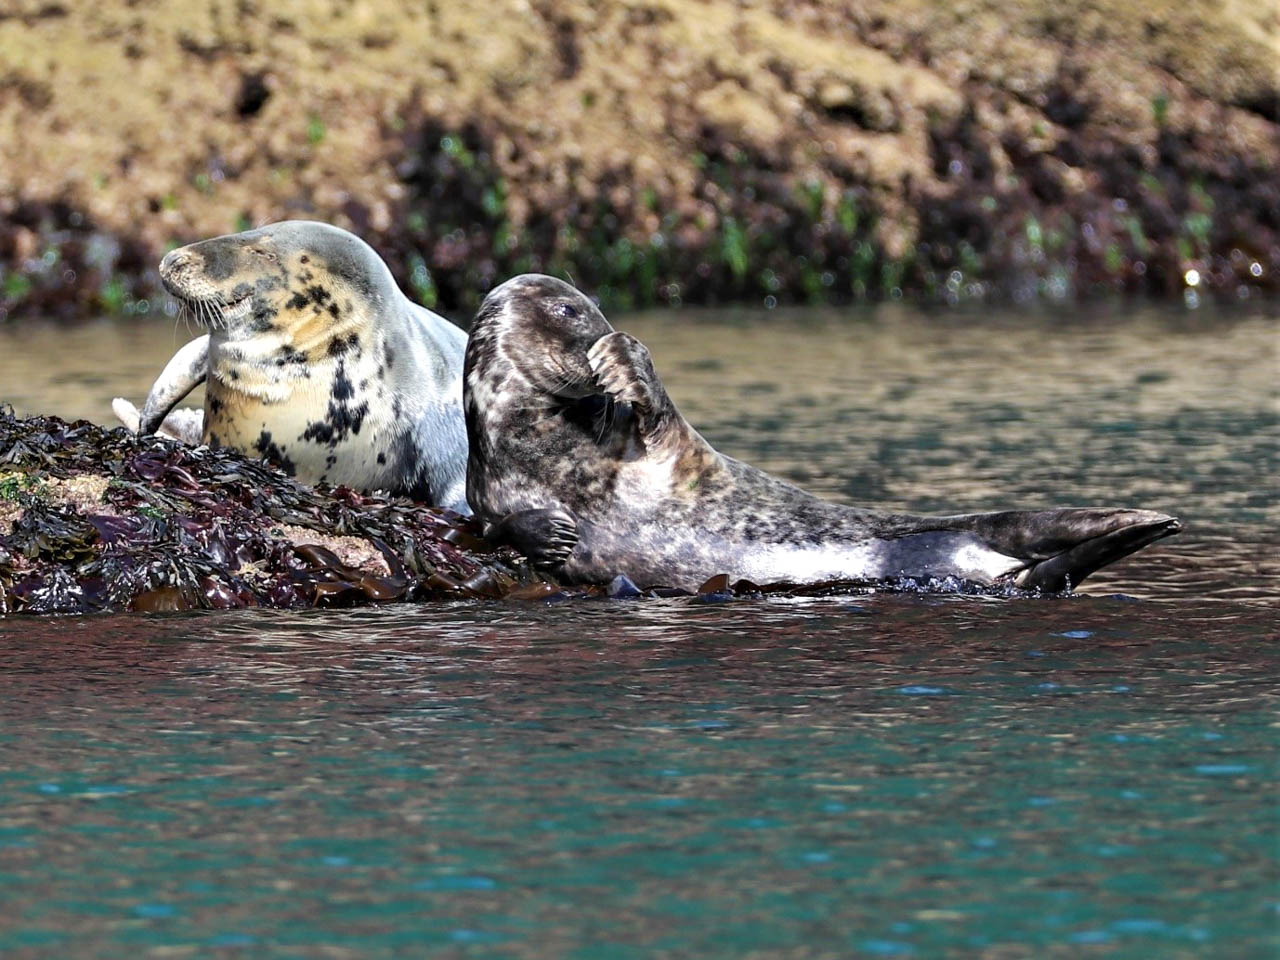 Two grey seals vie for space on the same rock